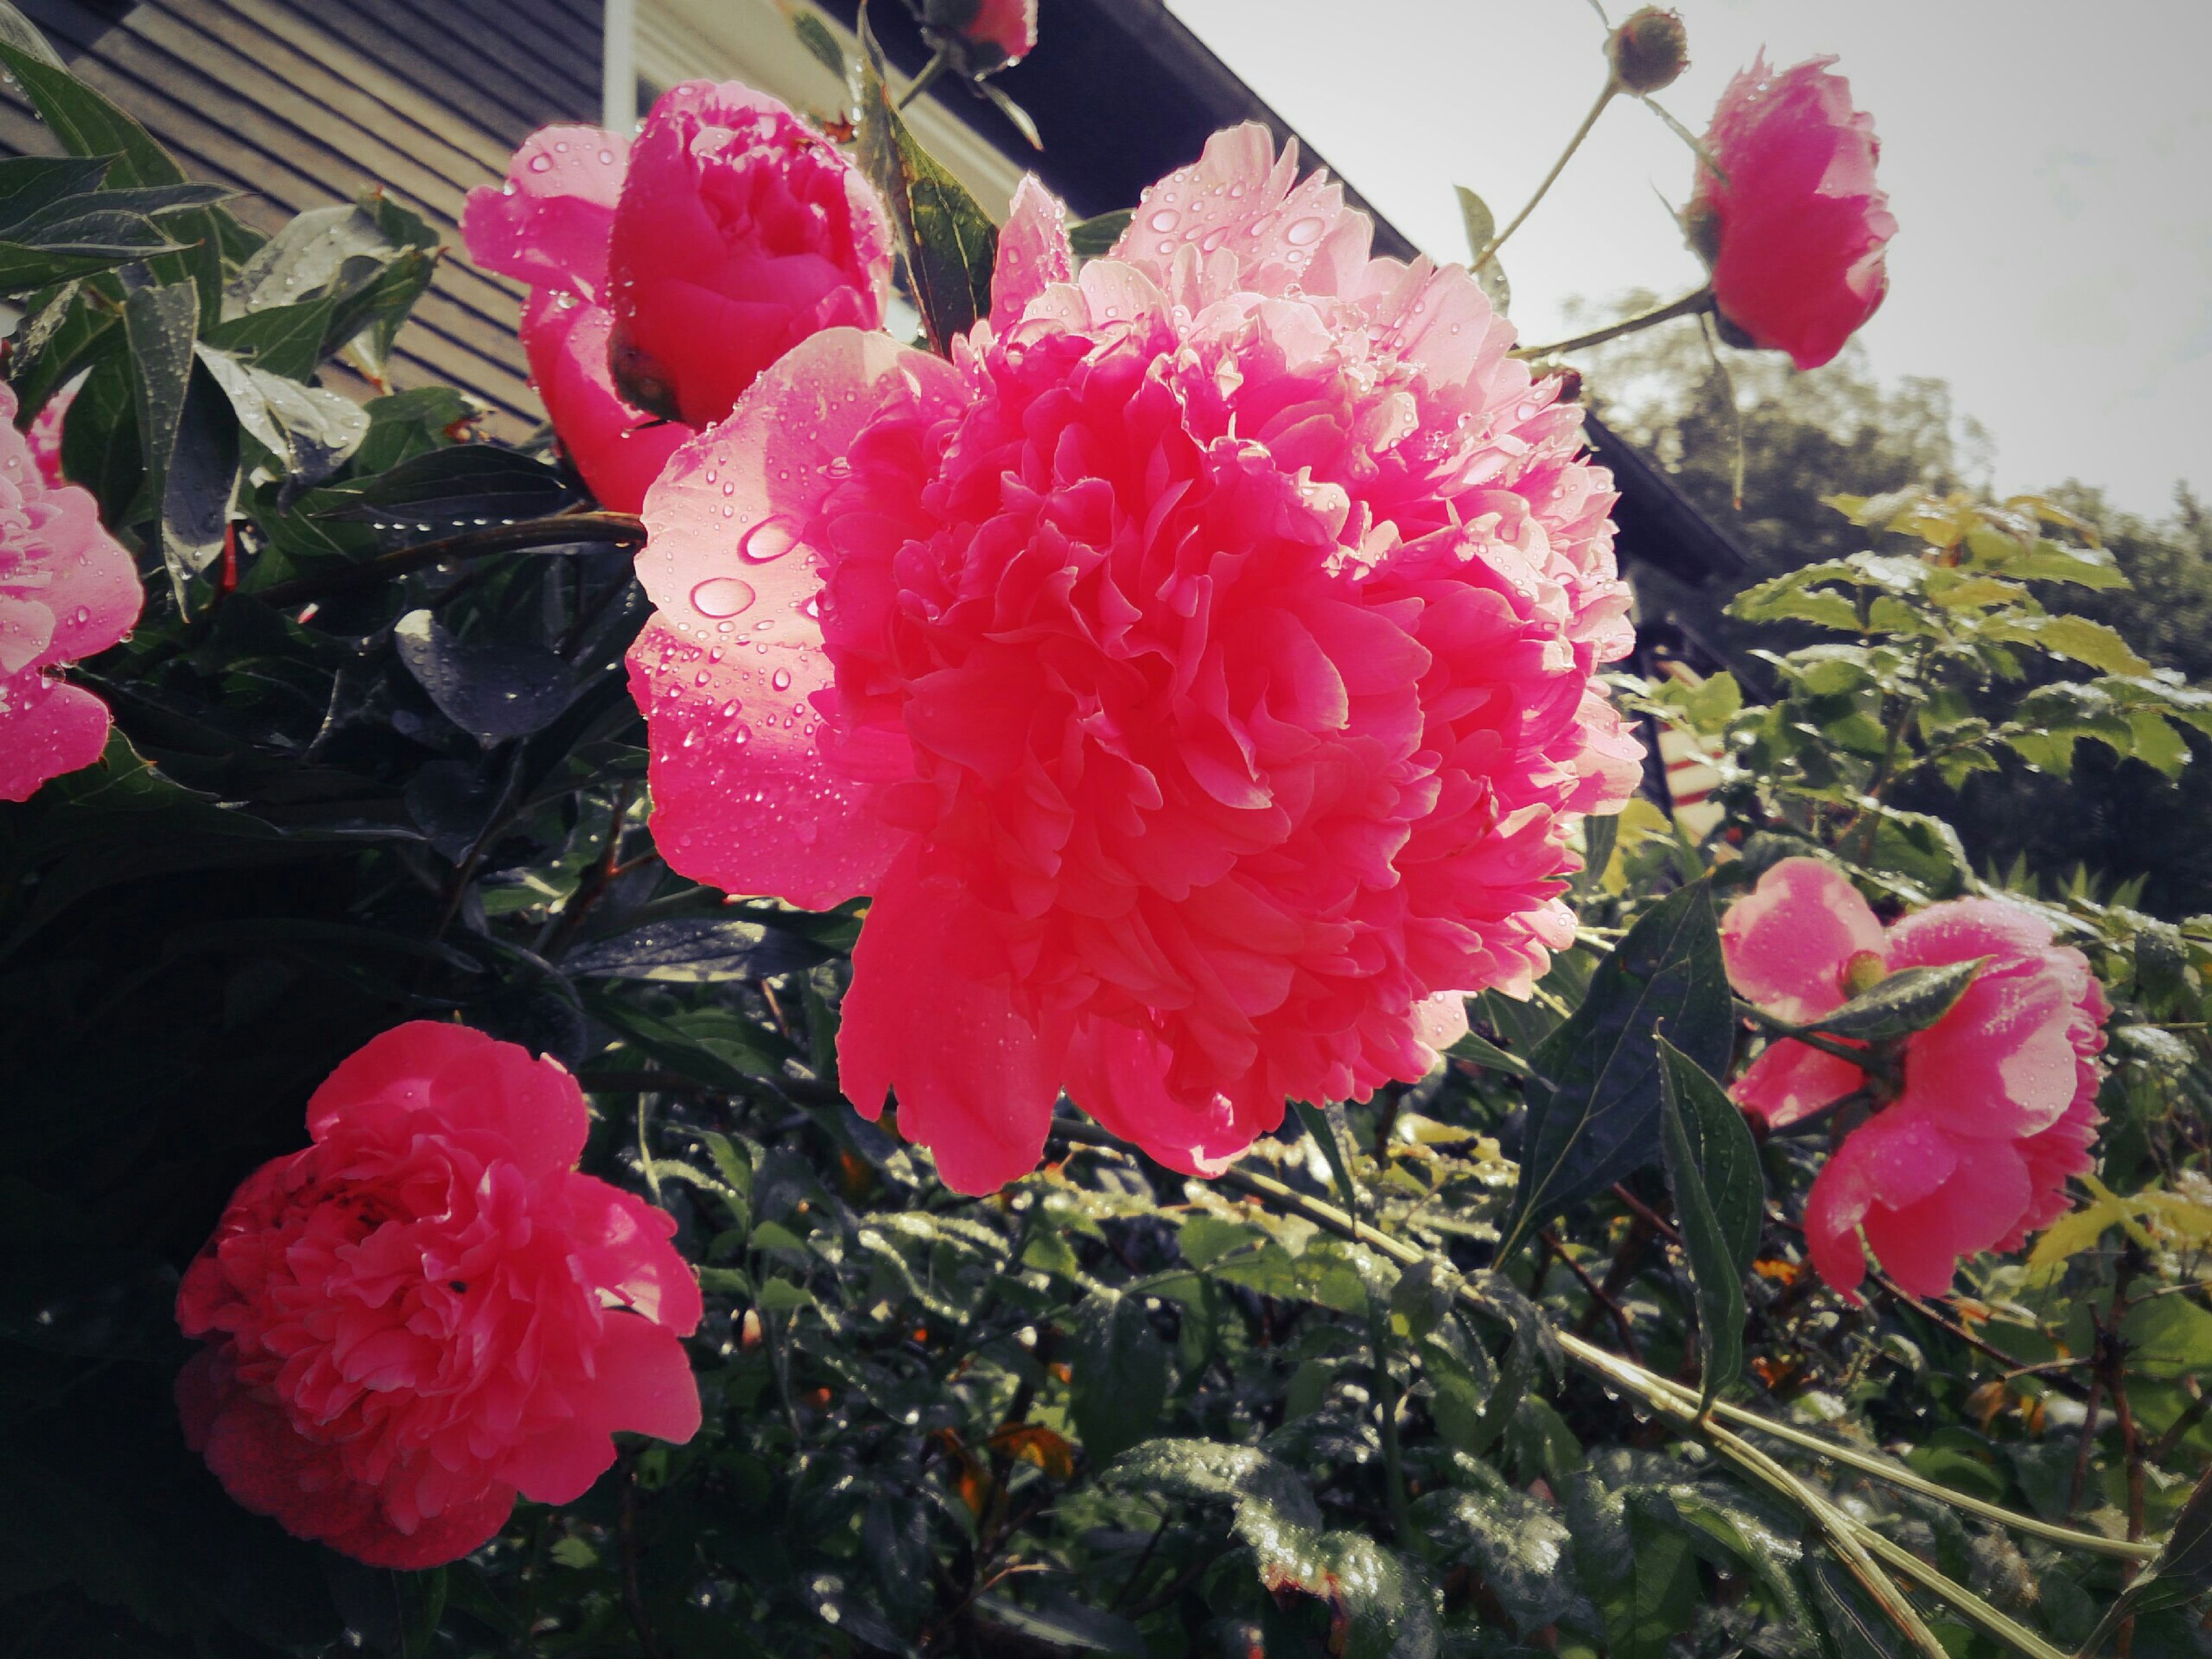 flower, petal, freshness, fragility, flower head, pink color, beauty in nature, growth, blooming, red, plant, nature, rose - flower, close-up, in bloom, pink, day, leaf, outdoors, no people